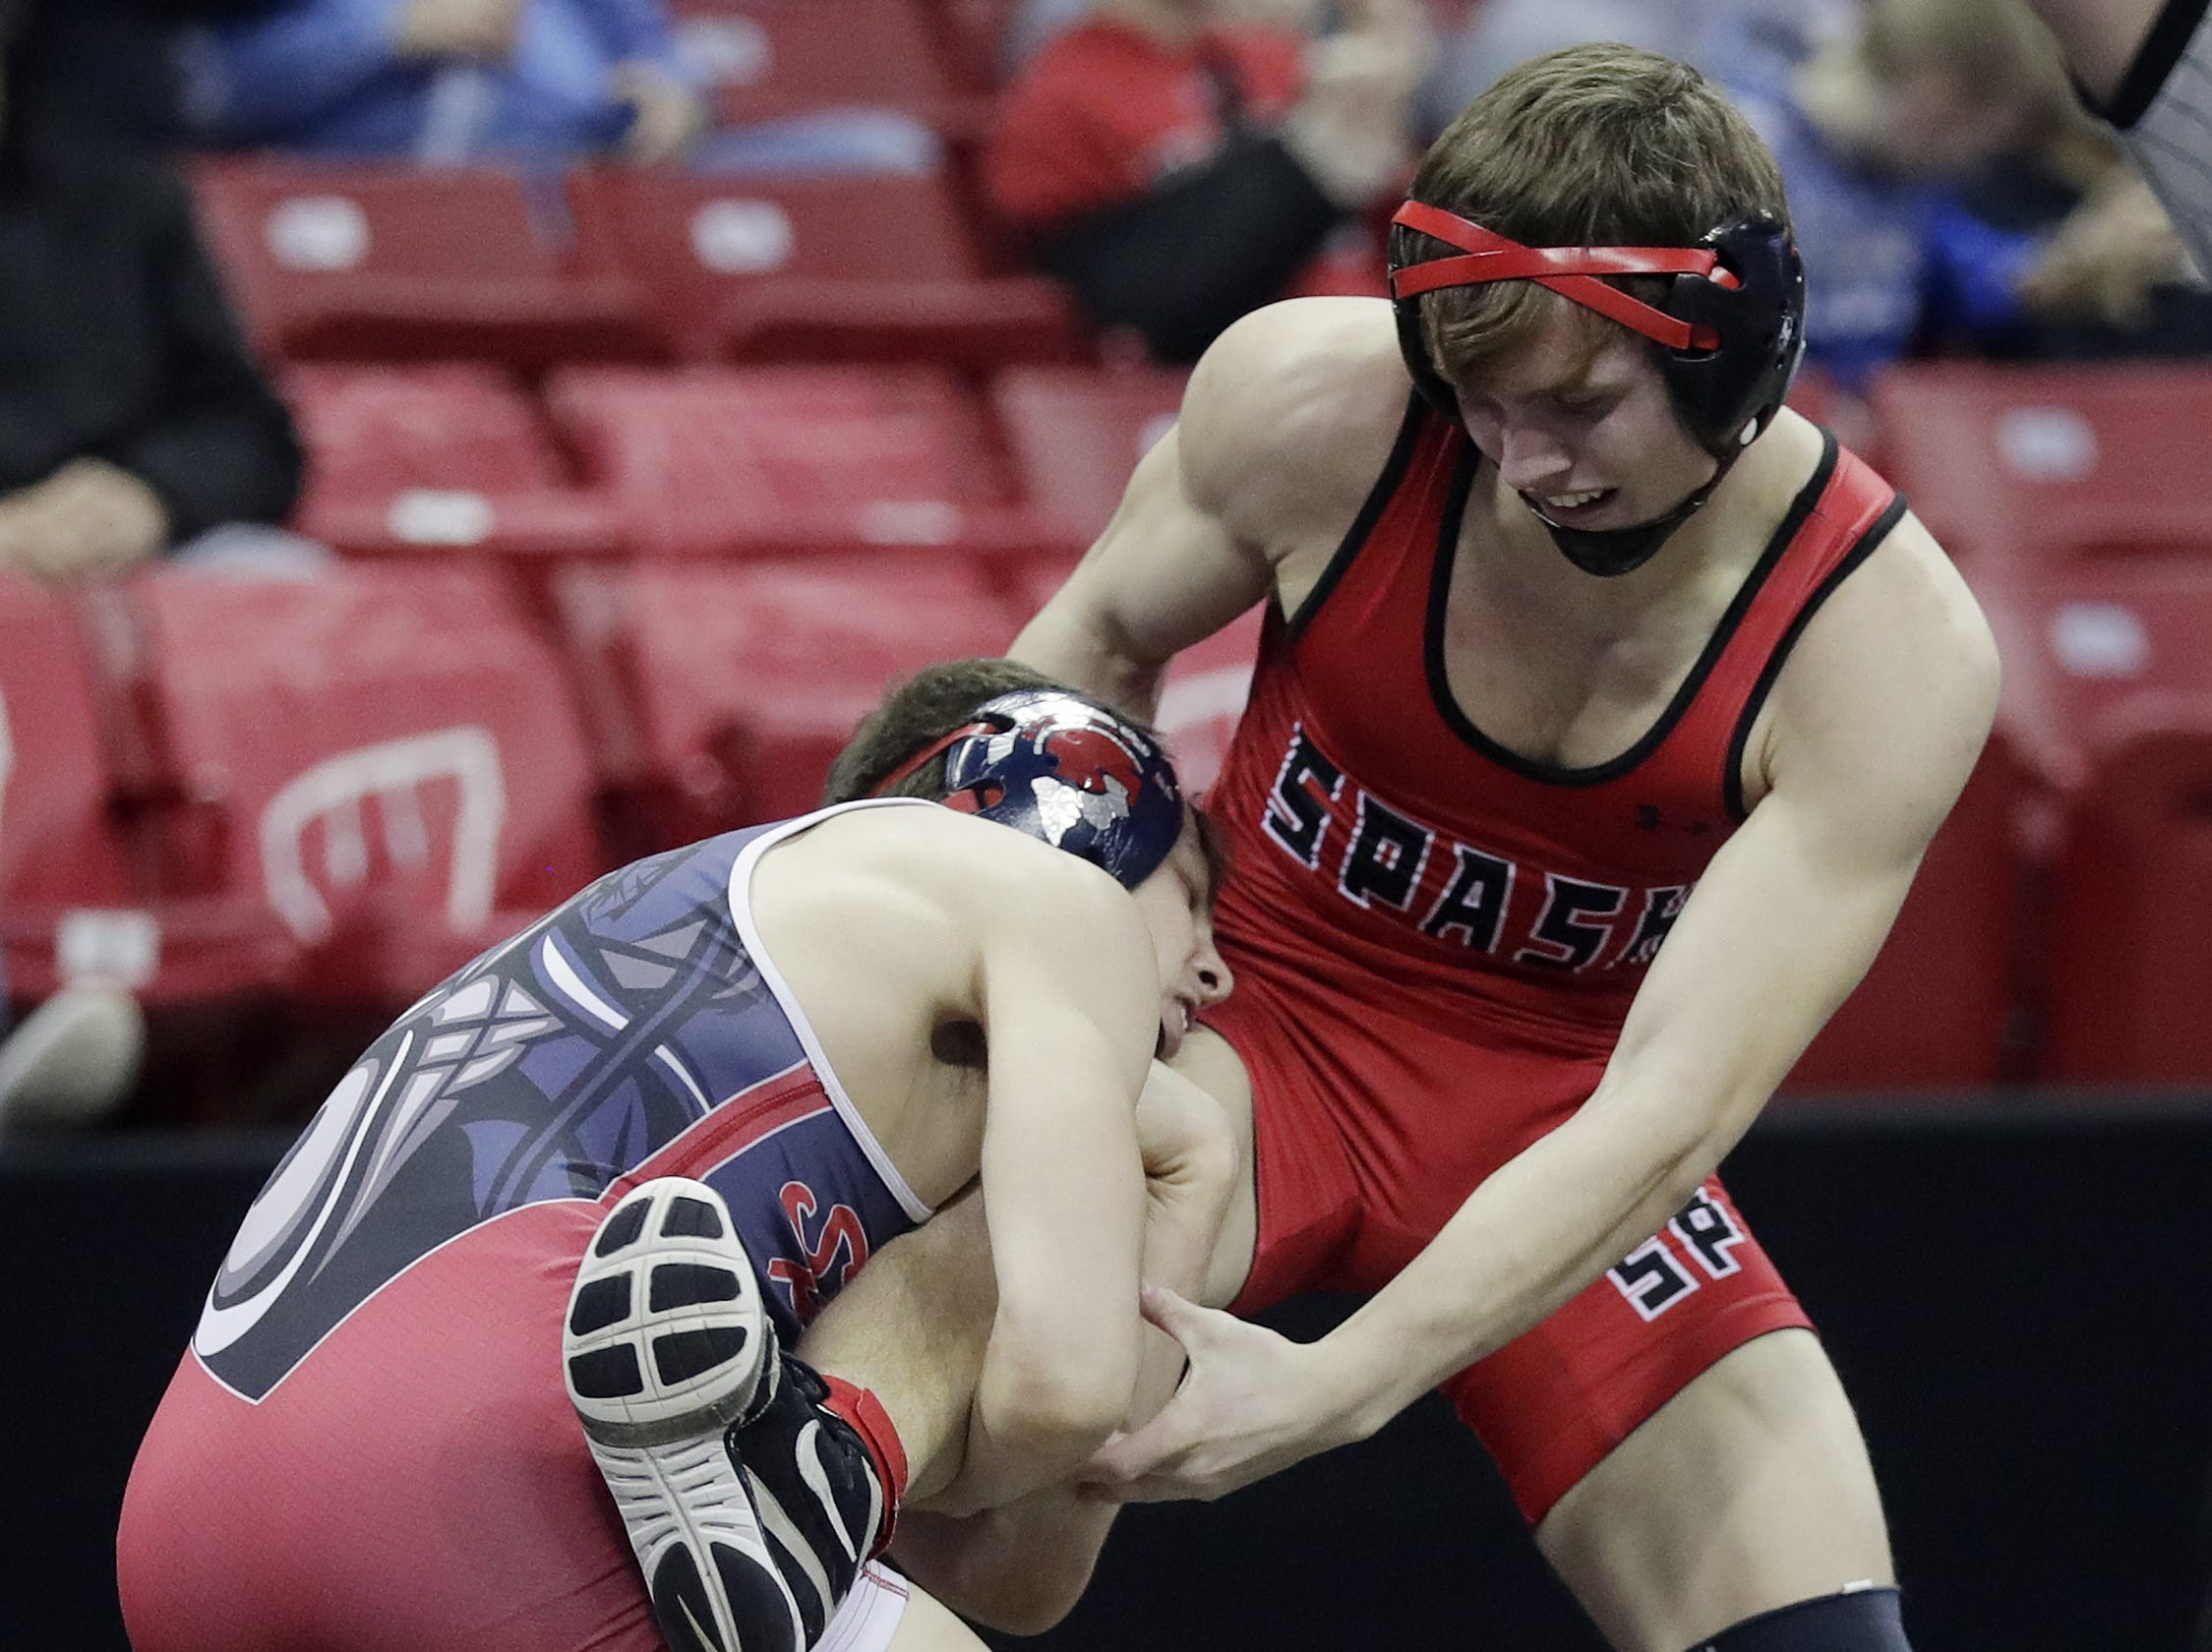 SPASH's Max Schierl wrestles in a Division 1 132-pound preliminary match at the WIAA state individual wrestling tournament at the Kohl Center on Thursday, February 21, 2019 in Madison, Wis. Adam Wesley/USA TODAY NETWORK-Wisconsin